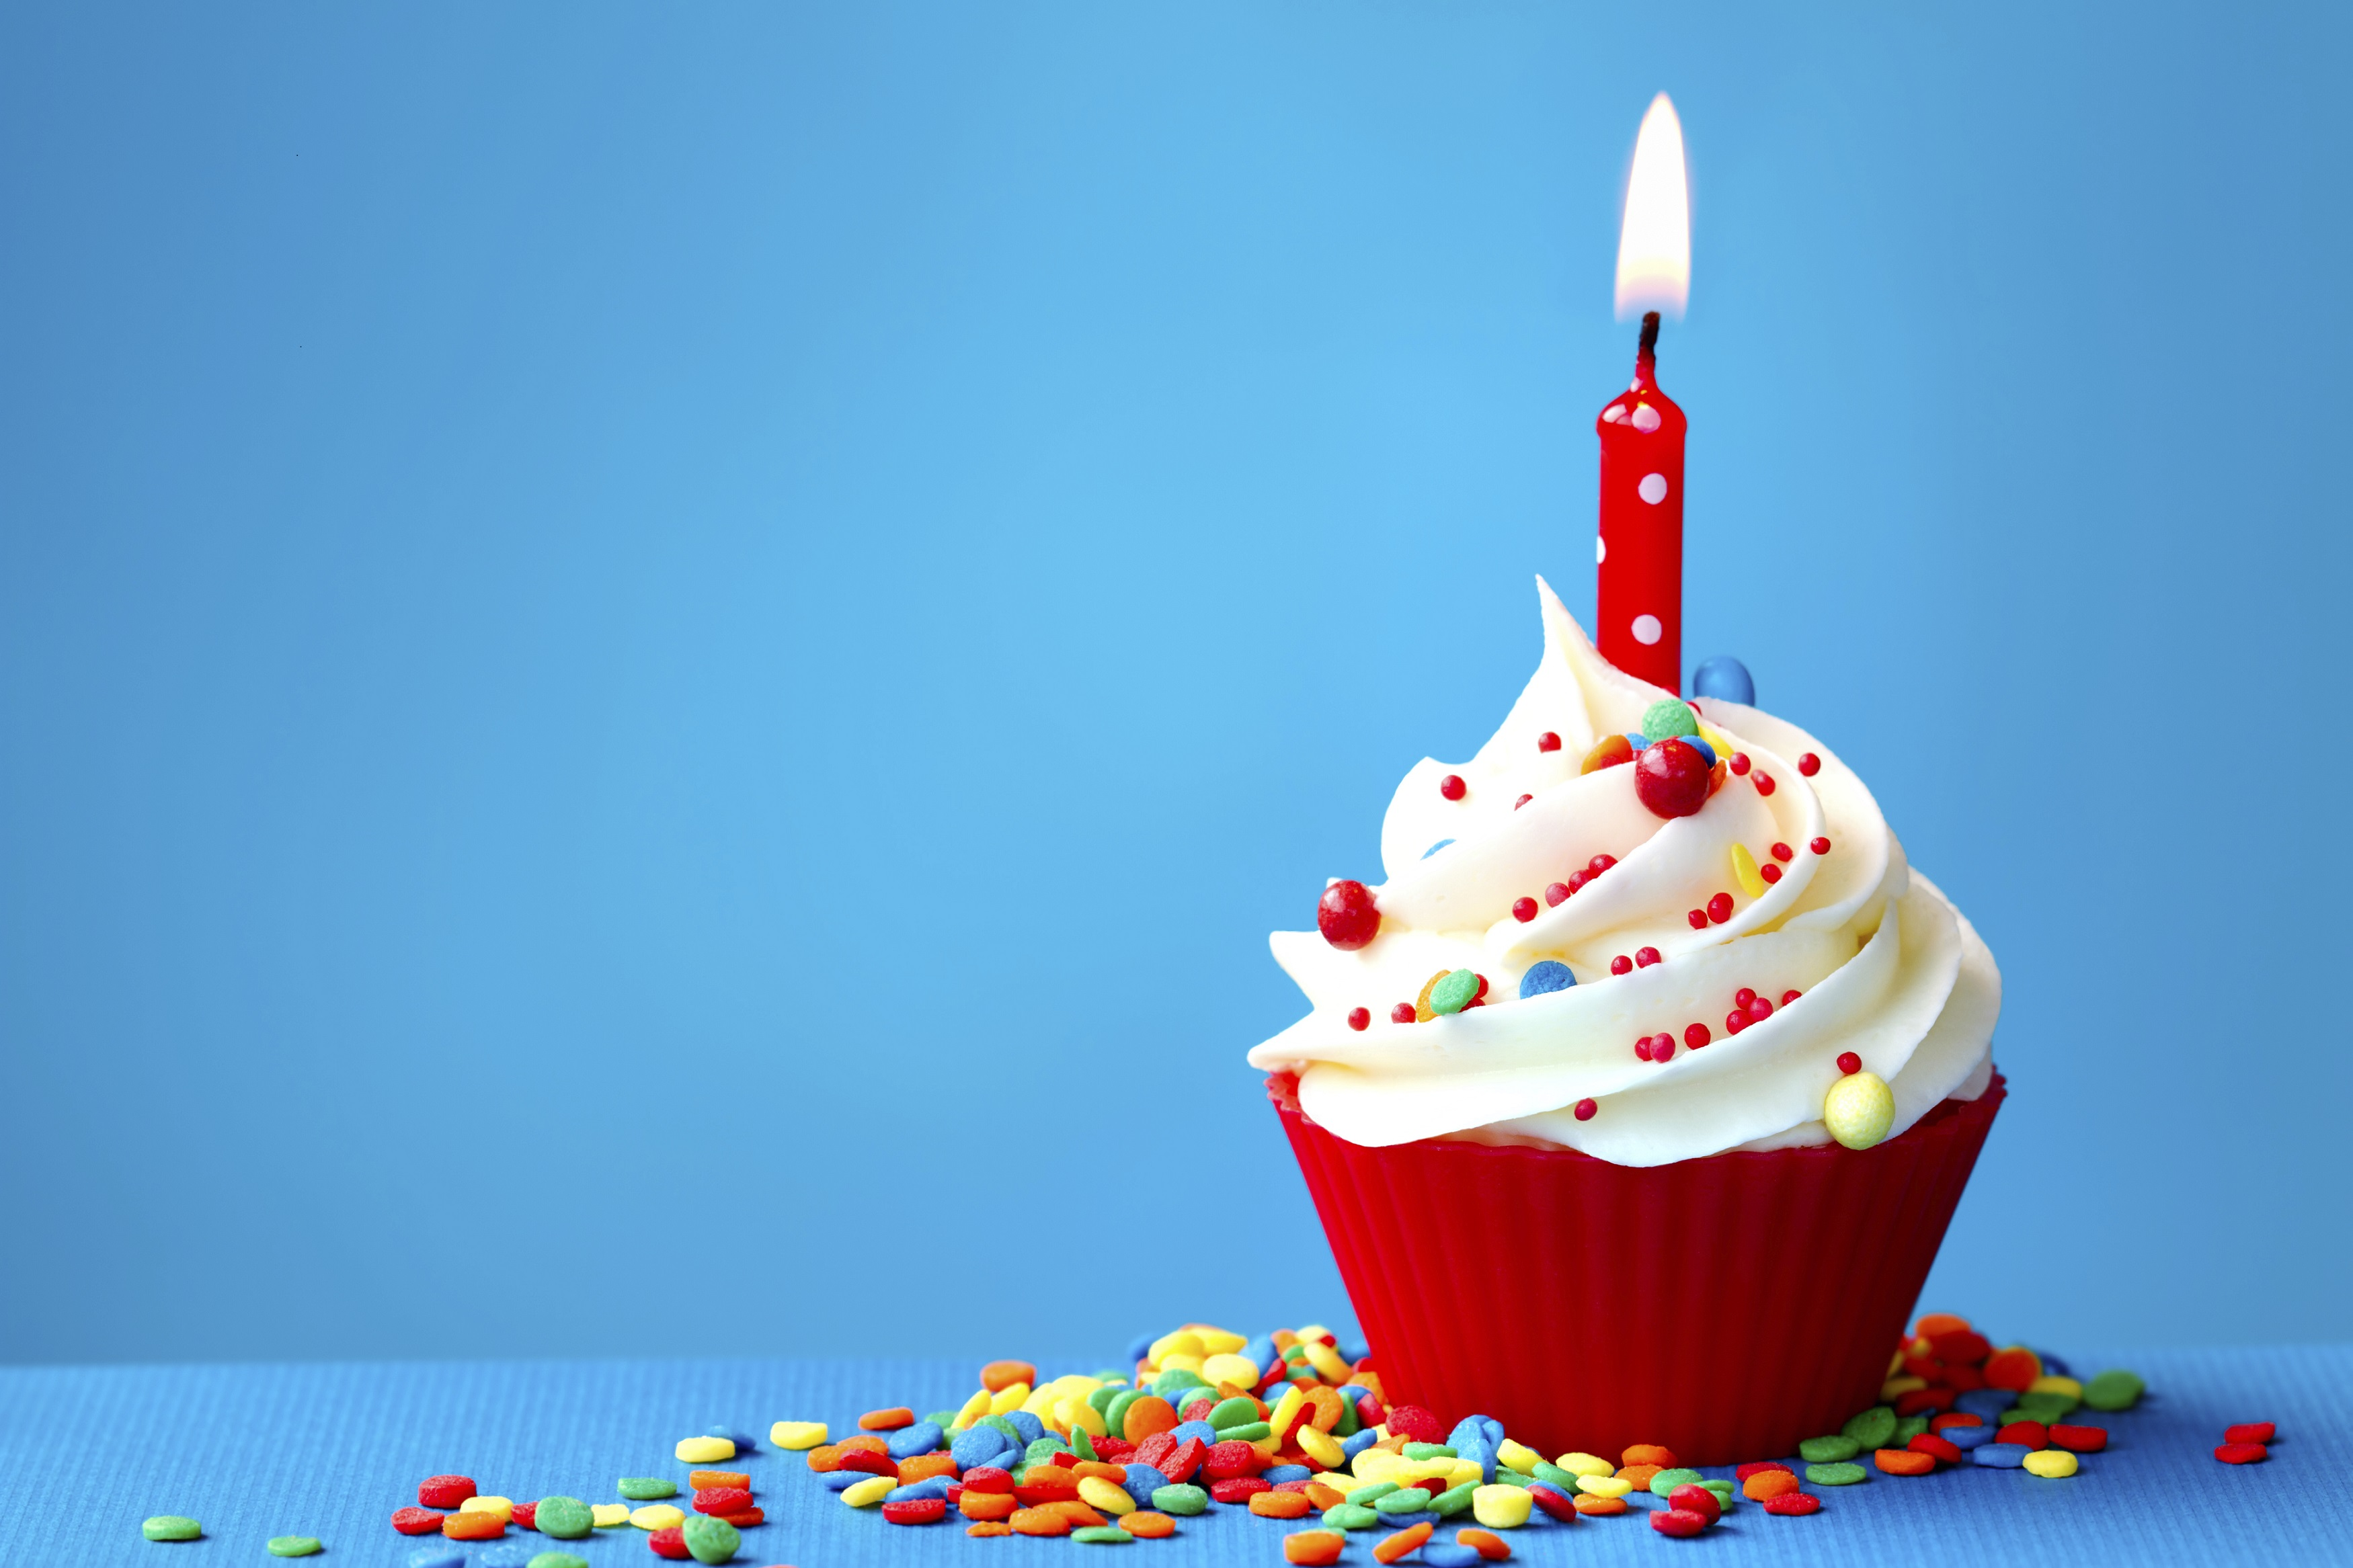 Birthday Cupcake with Sprinkles 1876.56 Kb